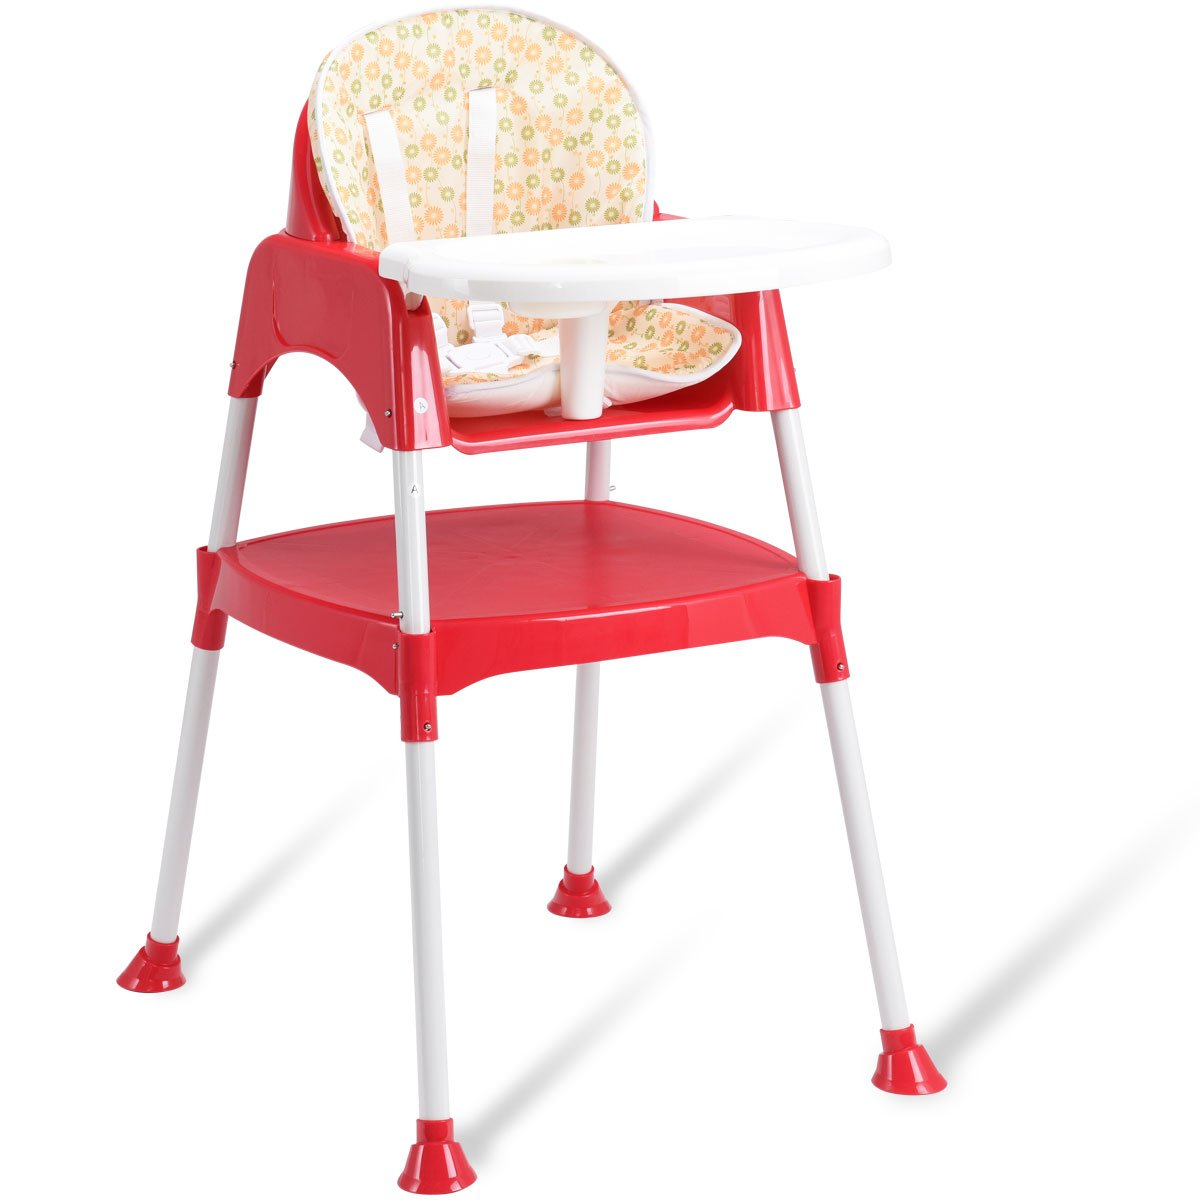 3a08c4461d0 Get Quotations · Costzon Convertible High Chair